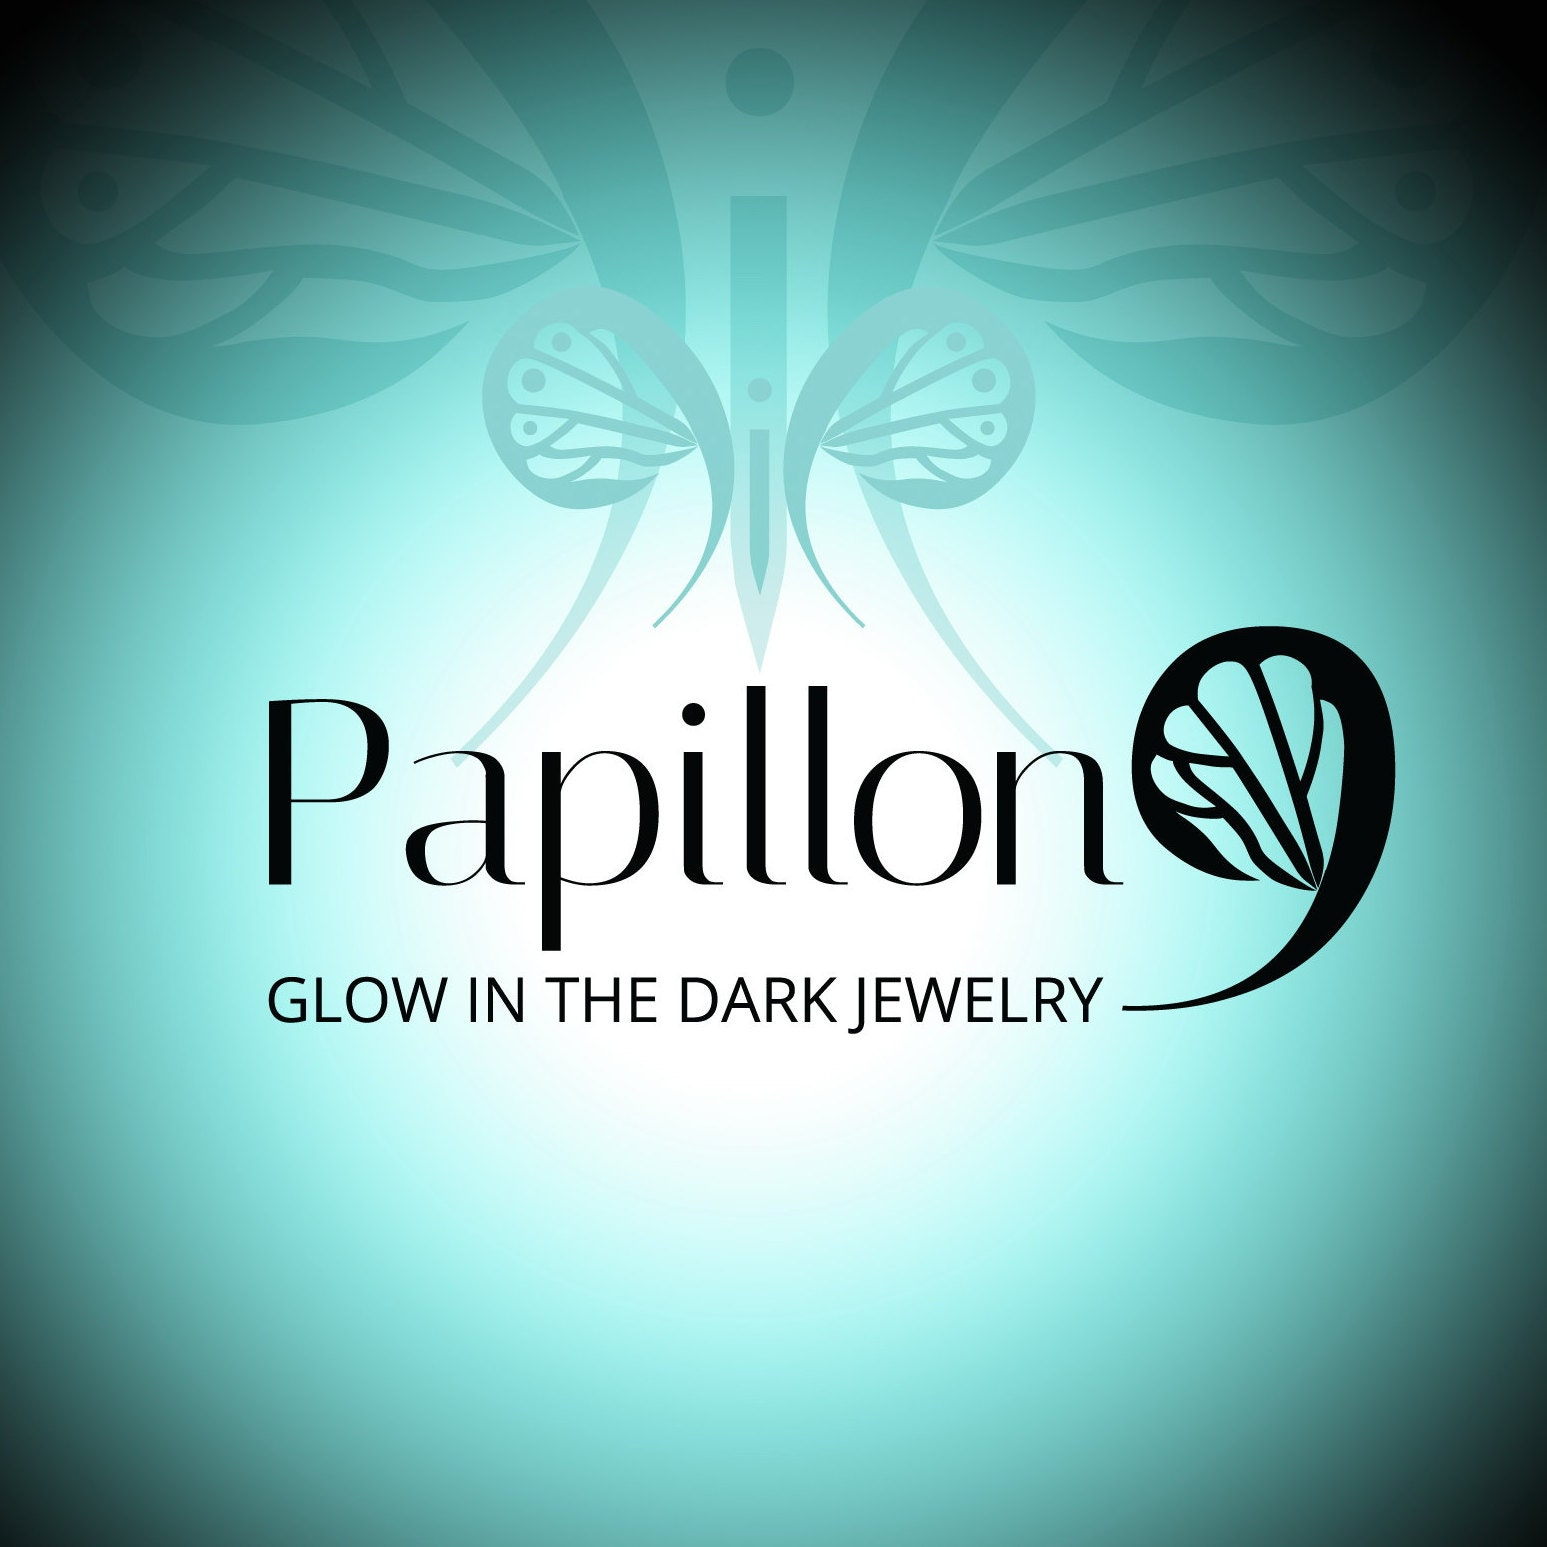 Fabuleux HIGH QUALITY JEWELRY GLOW IN THE DARK by Papillon9 on Etsy EU33